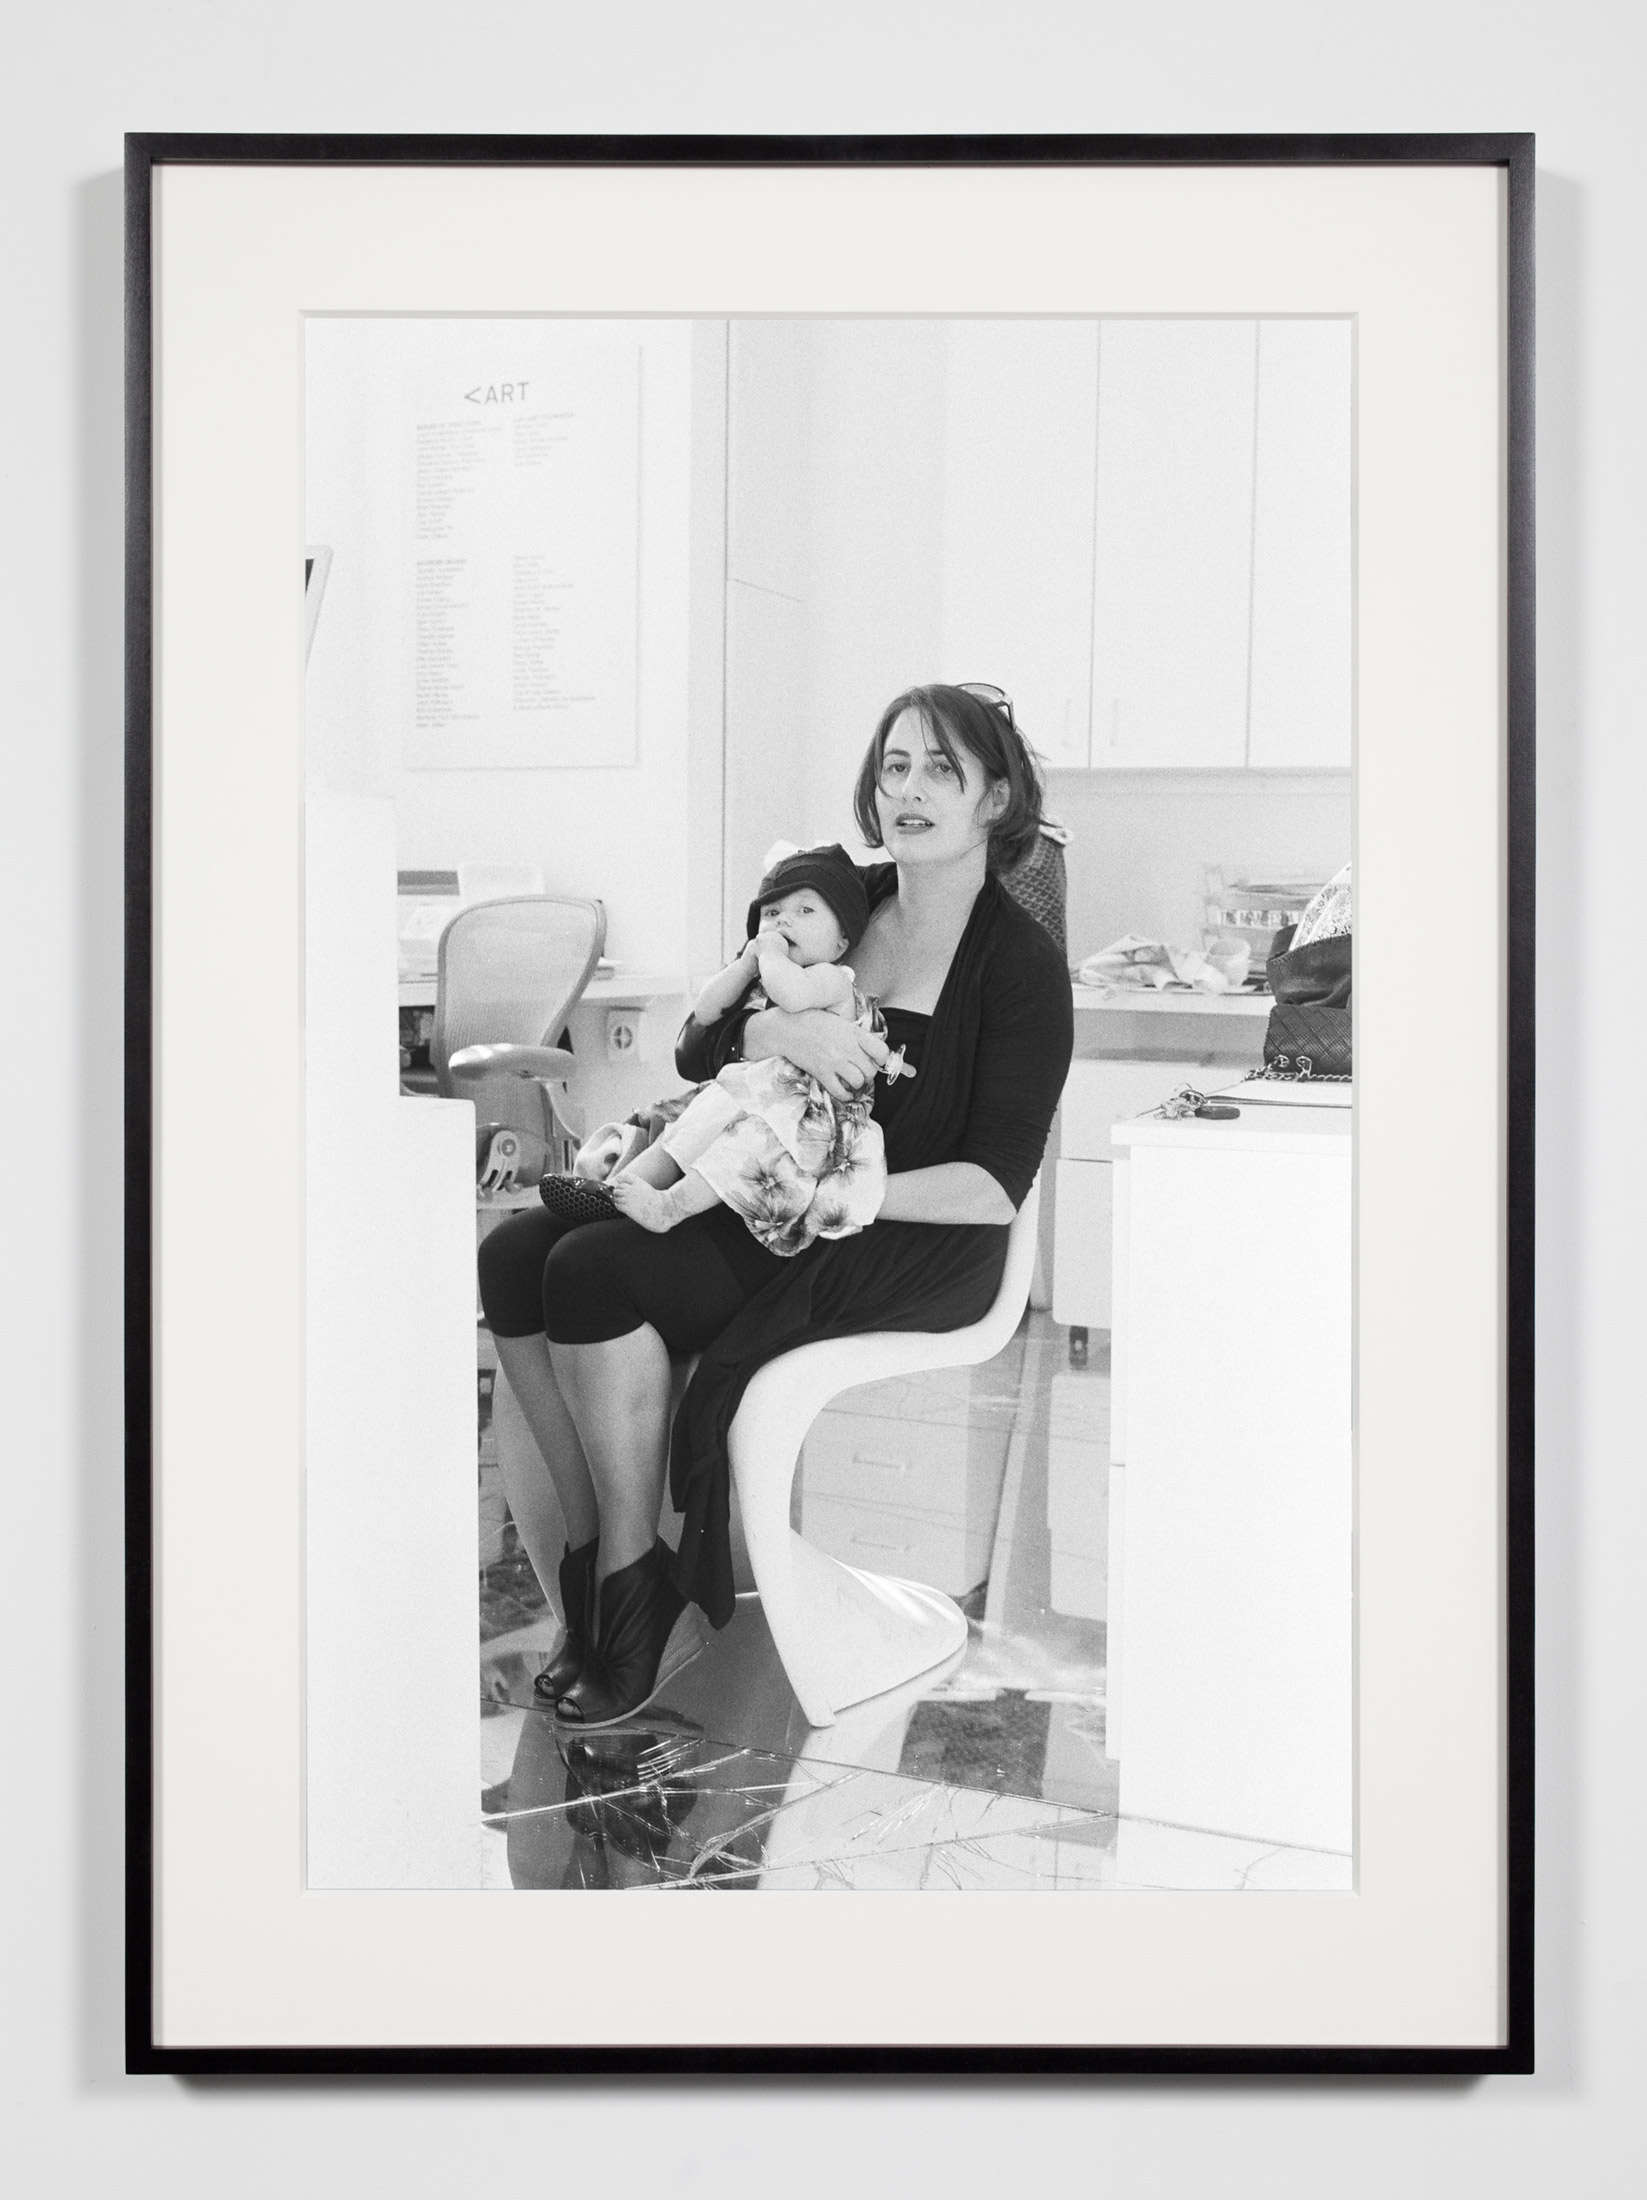 Nonprofit Director/Curator with Daughter, Los Angeles, California, March 17, 2009    2011   Epson Ultrachrome K3 archival ink jet print on Hahnemühle Photo Rag paper  36 3/8 x 26 3/8 inches   Industrial Portraits, 2008–